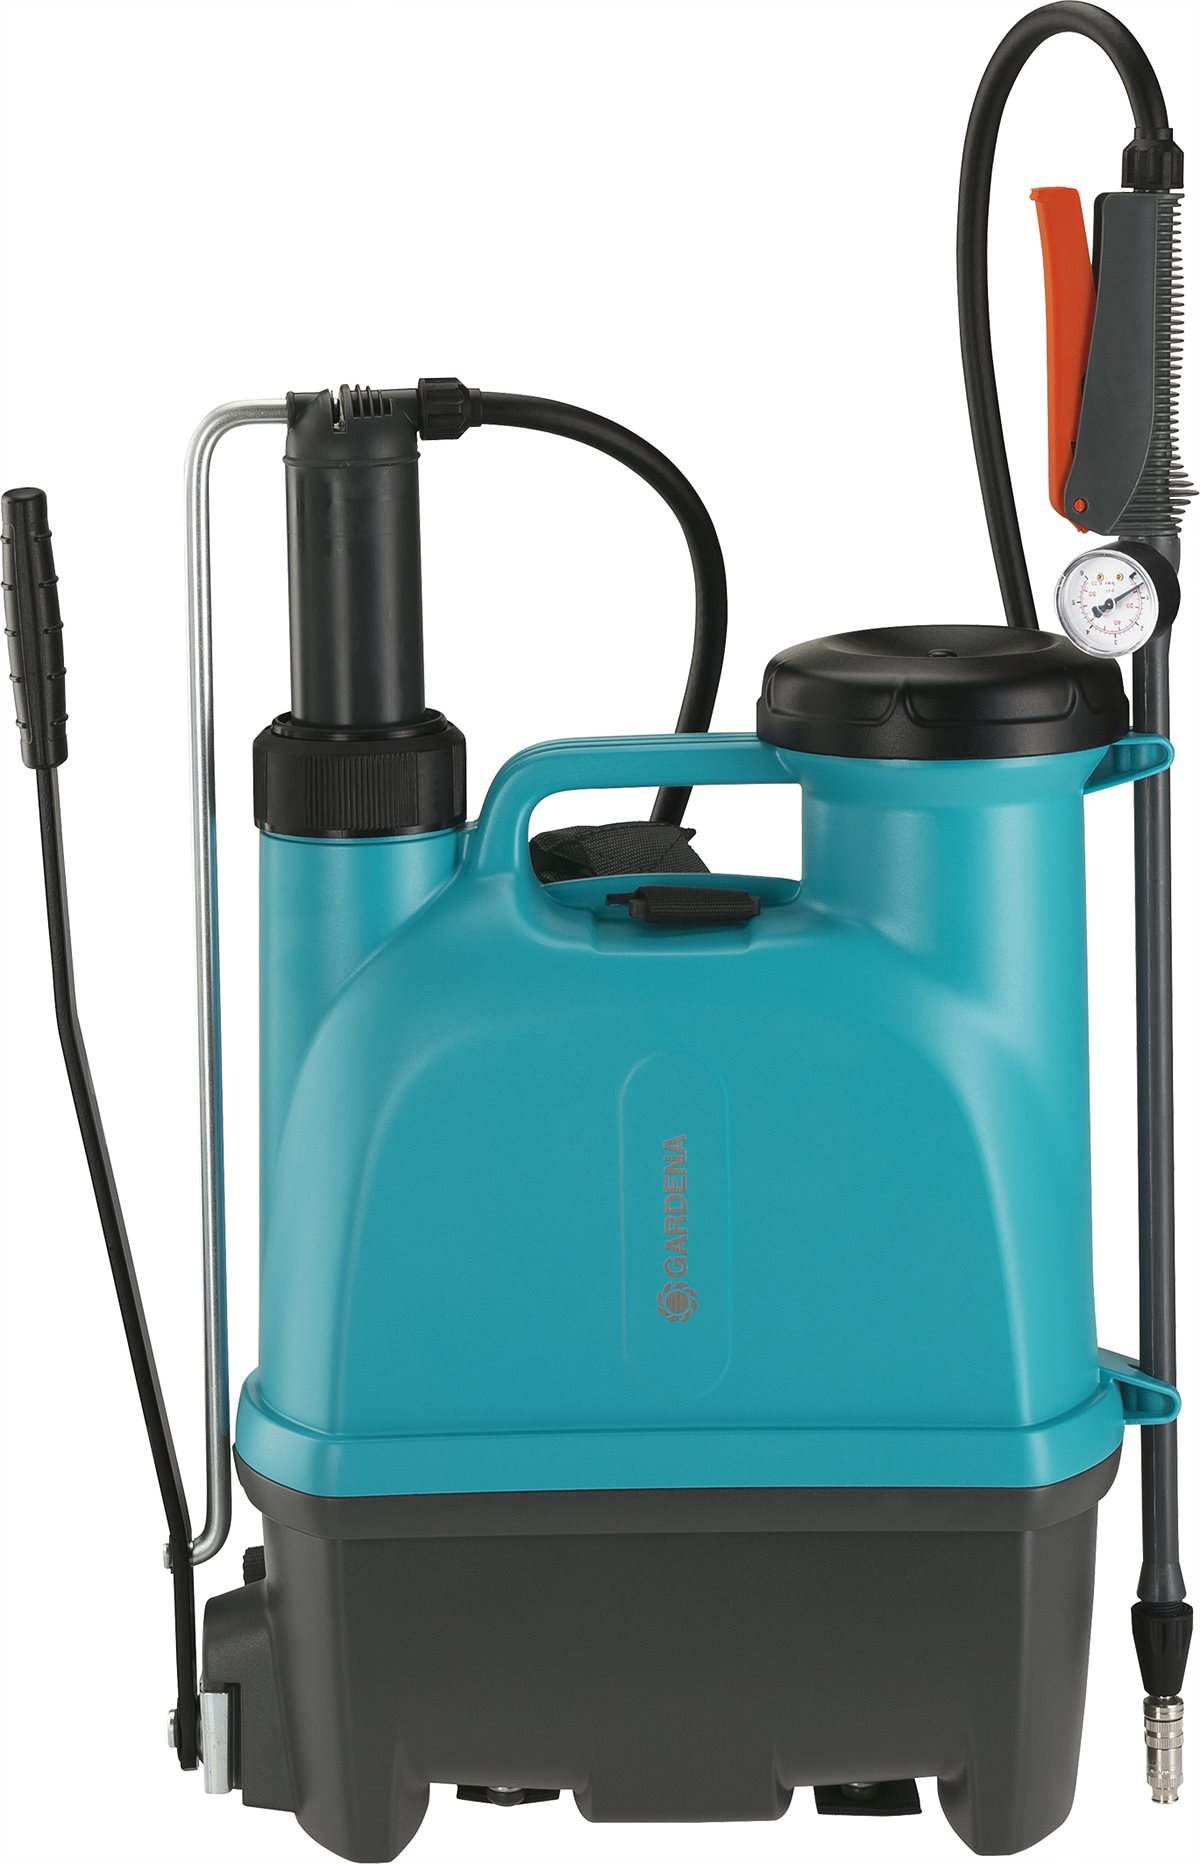 GARDENA Plus Backpack Sprayer 12 L